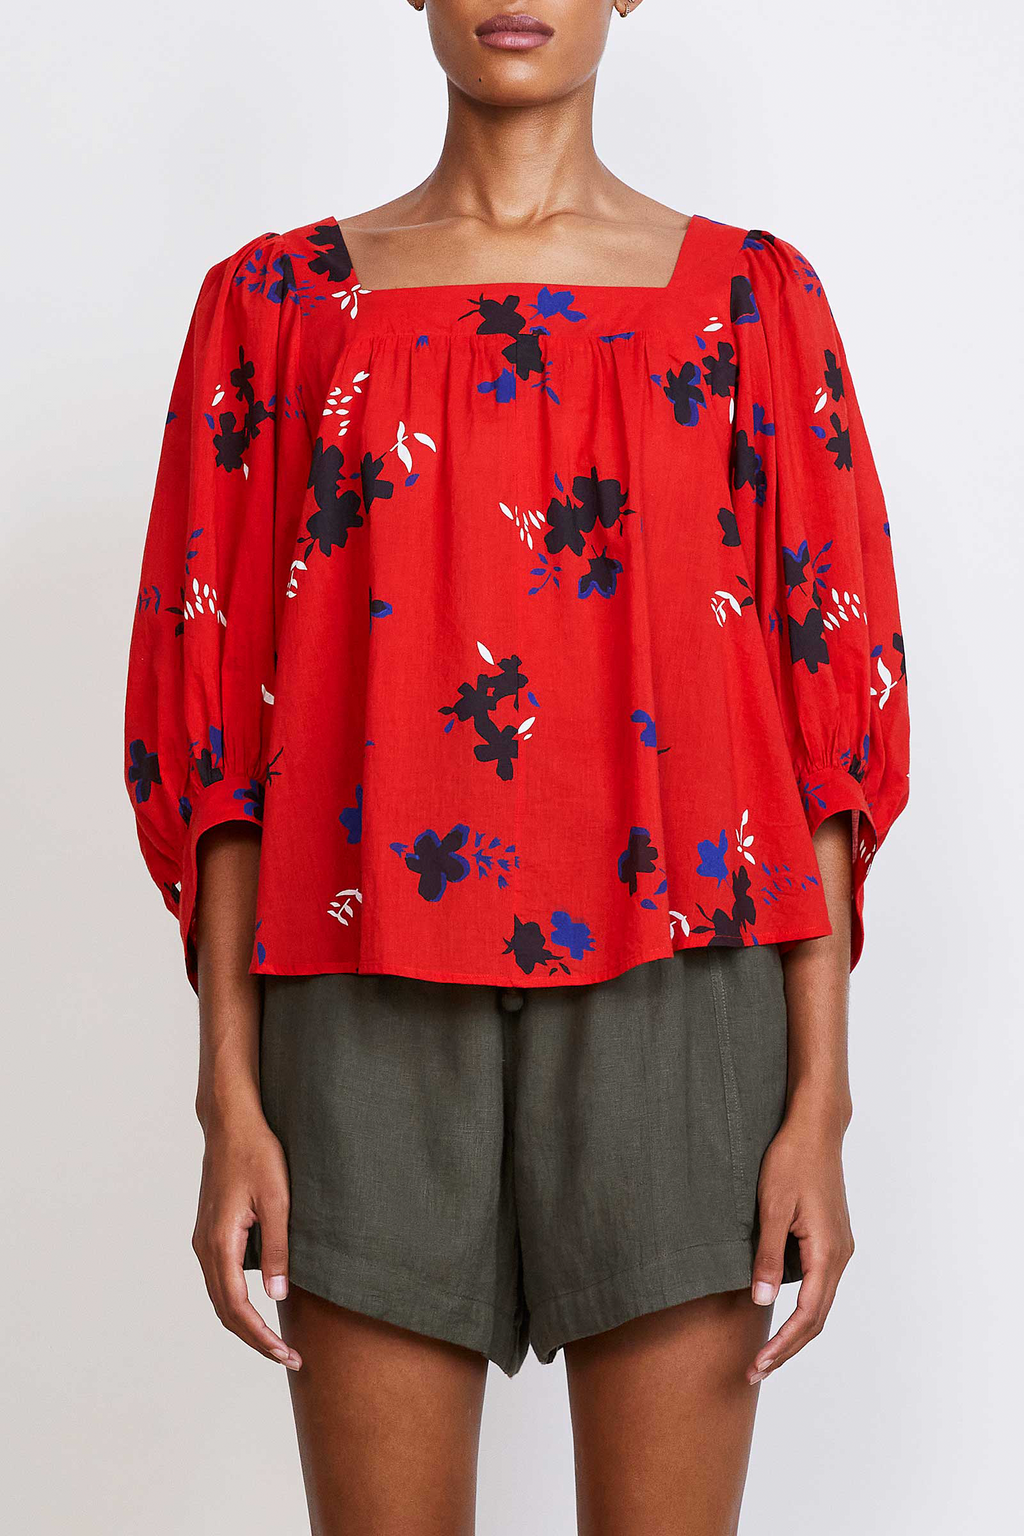 Apiece Apart Zinnia Top in Red Aster Floral